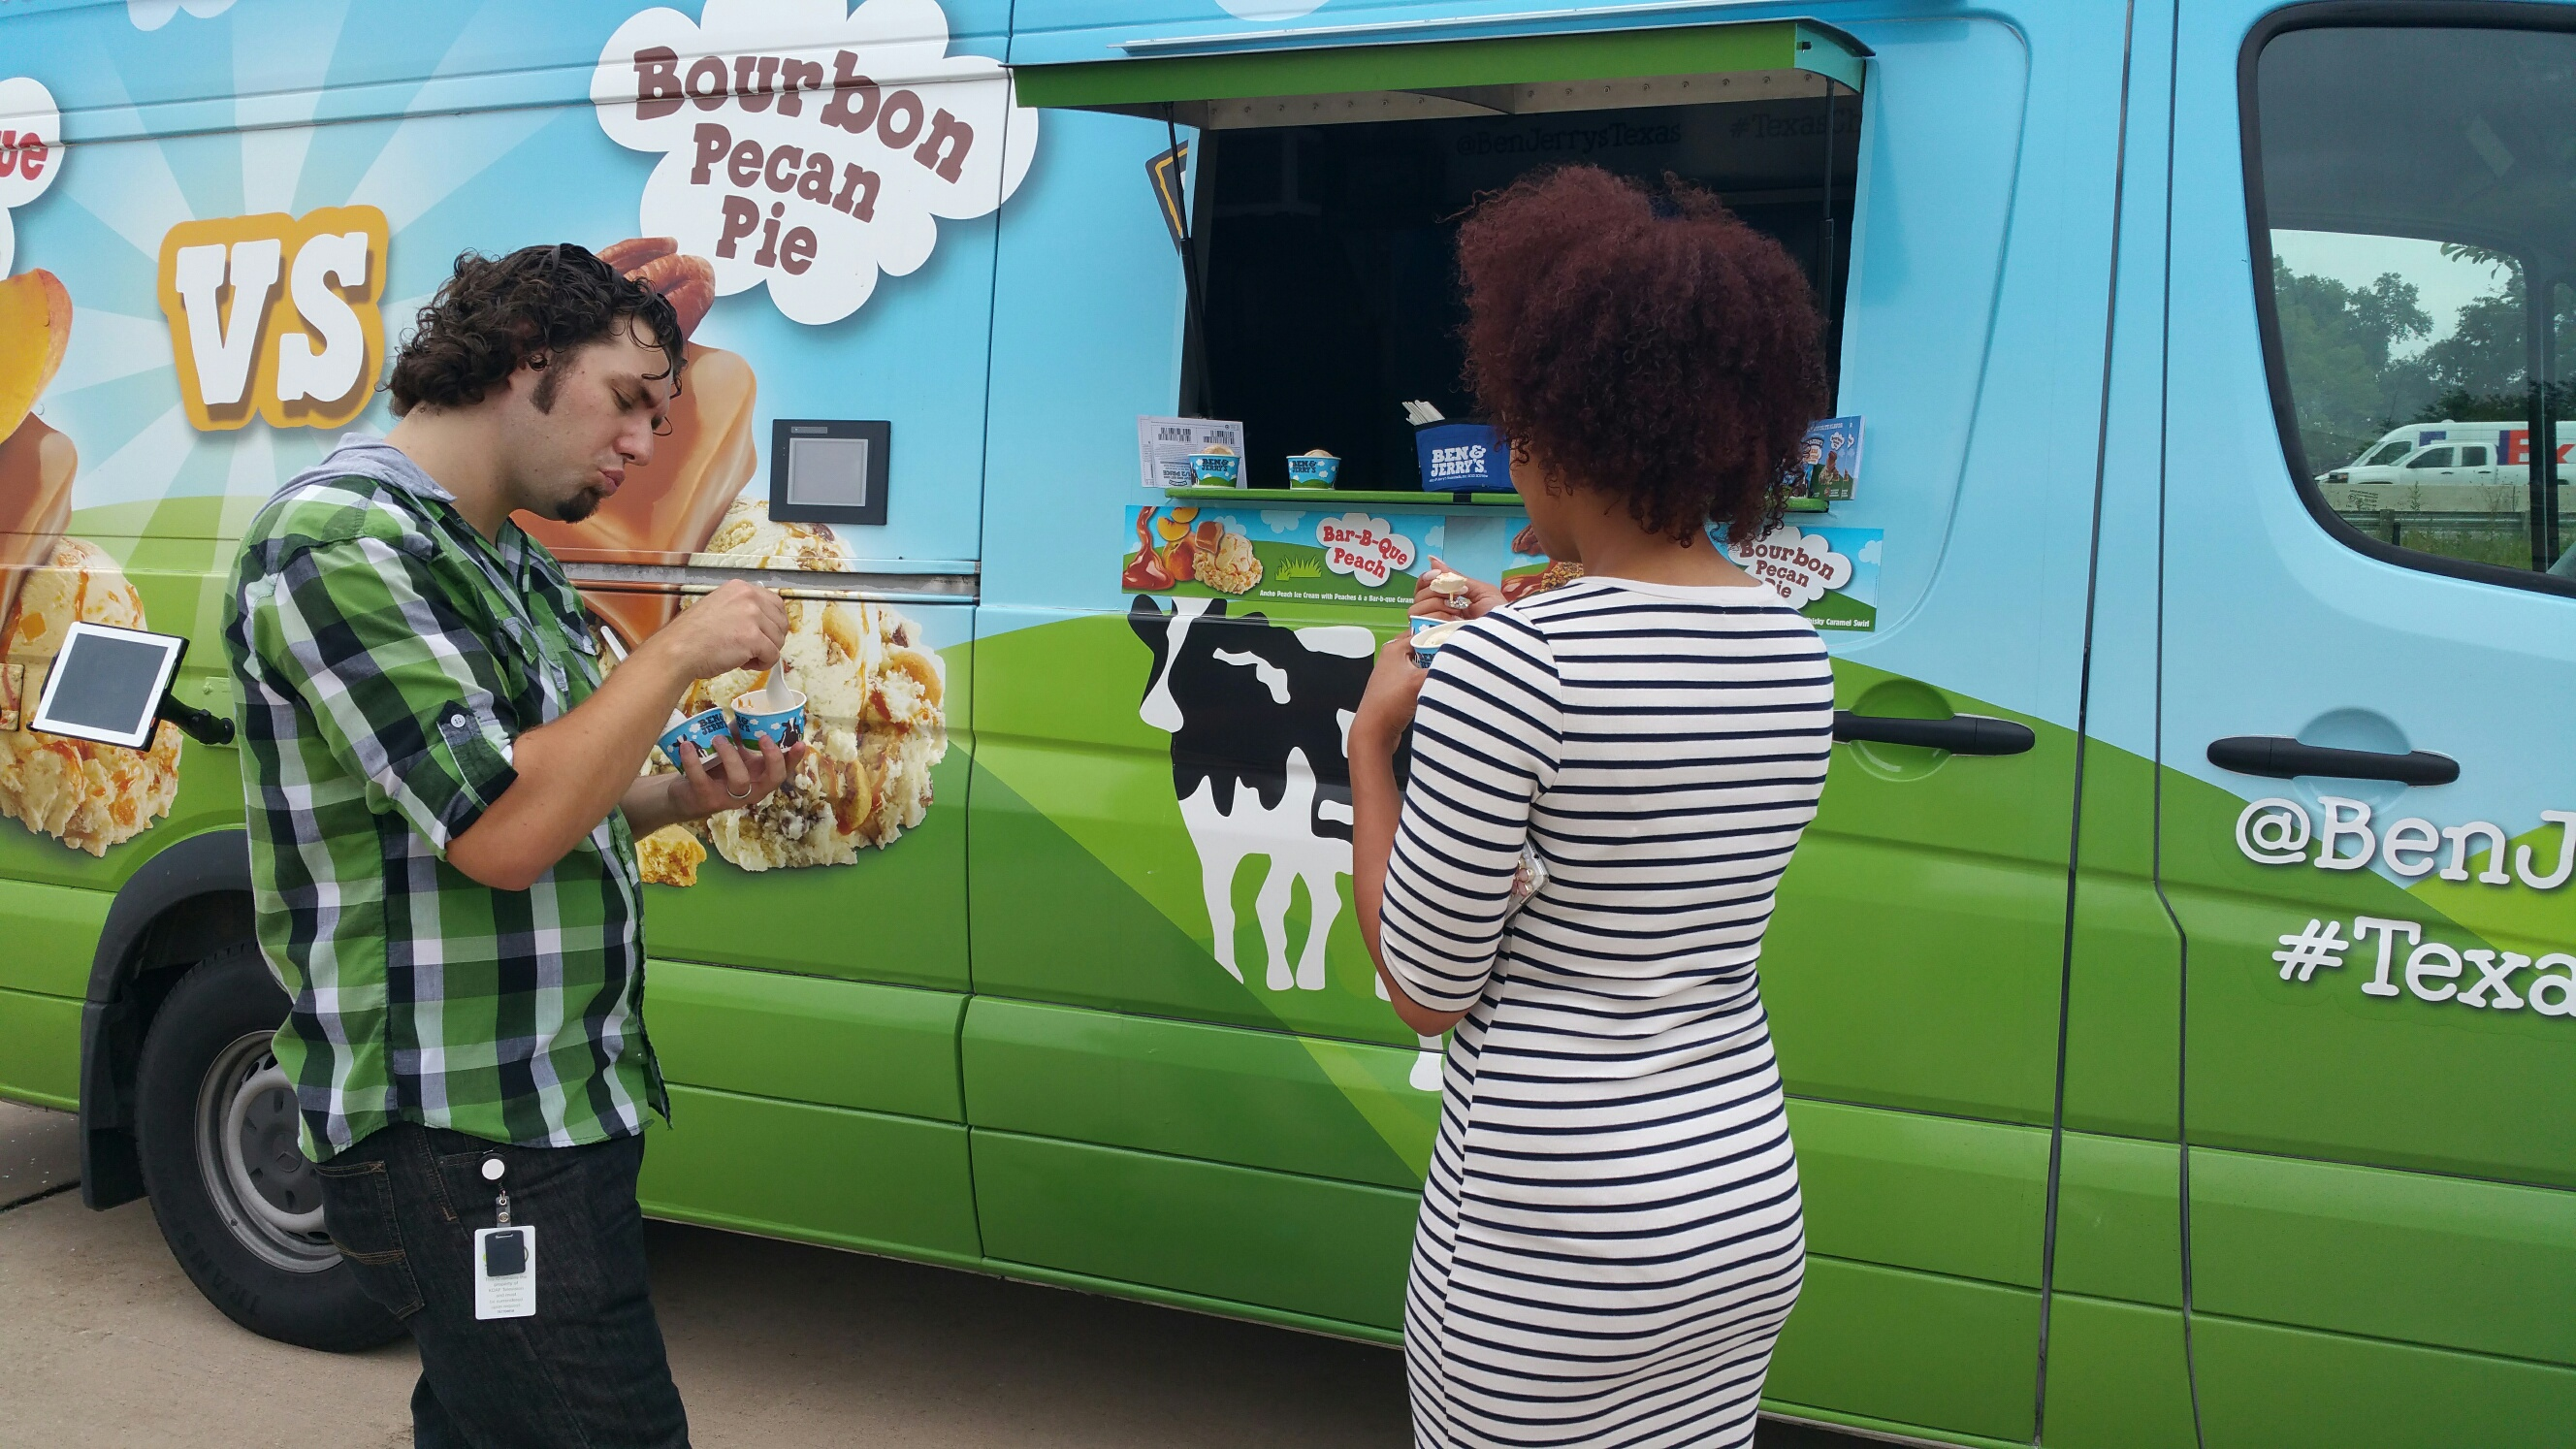 All's well when the Blue Bell food truck pulls into the parking lot.